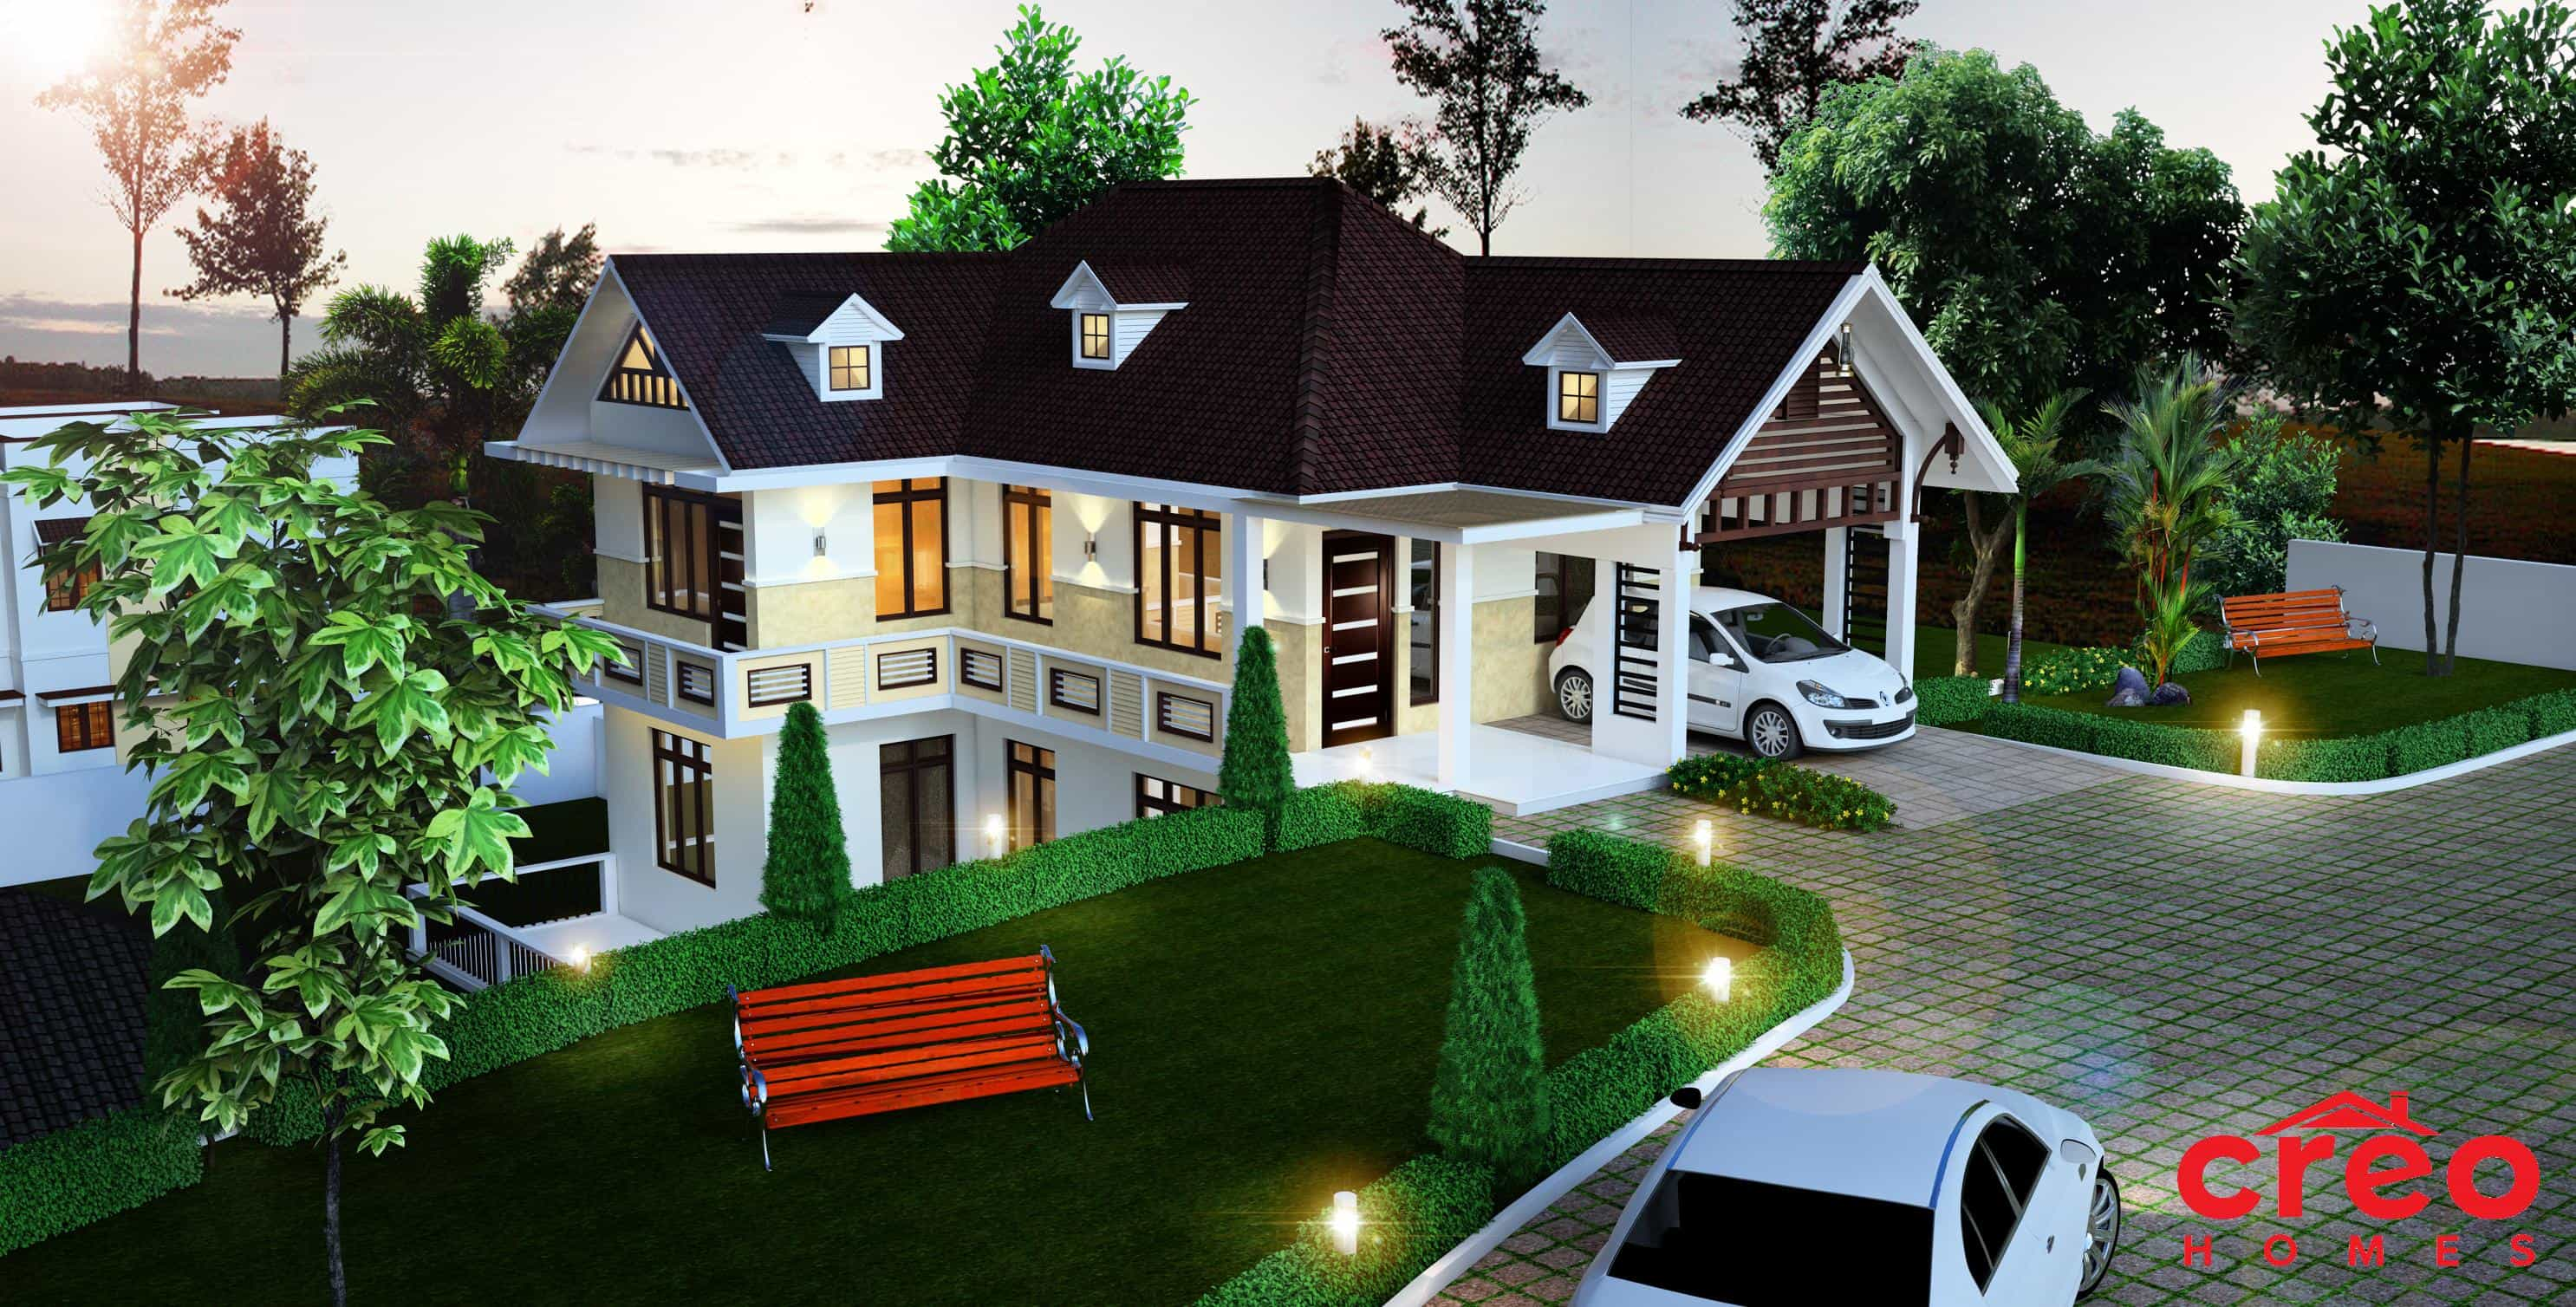 Kerala home design house plans indian budget models for Architectural plans for houses in india